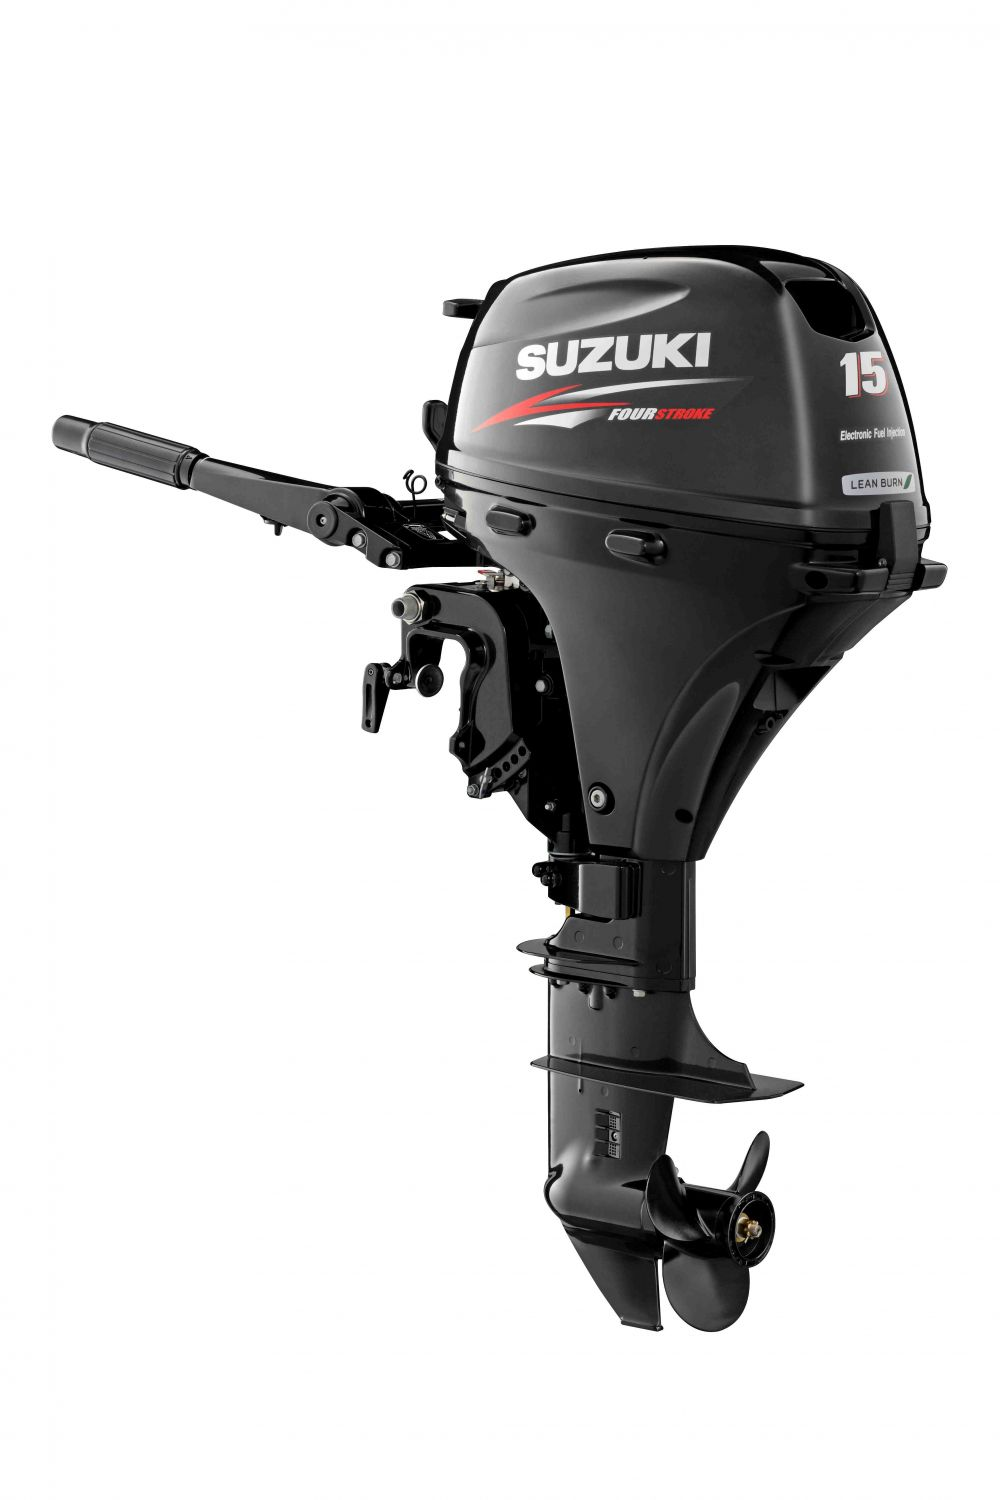 Suzuki DF15A four stroke marine outboard engine